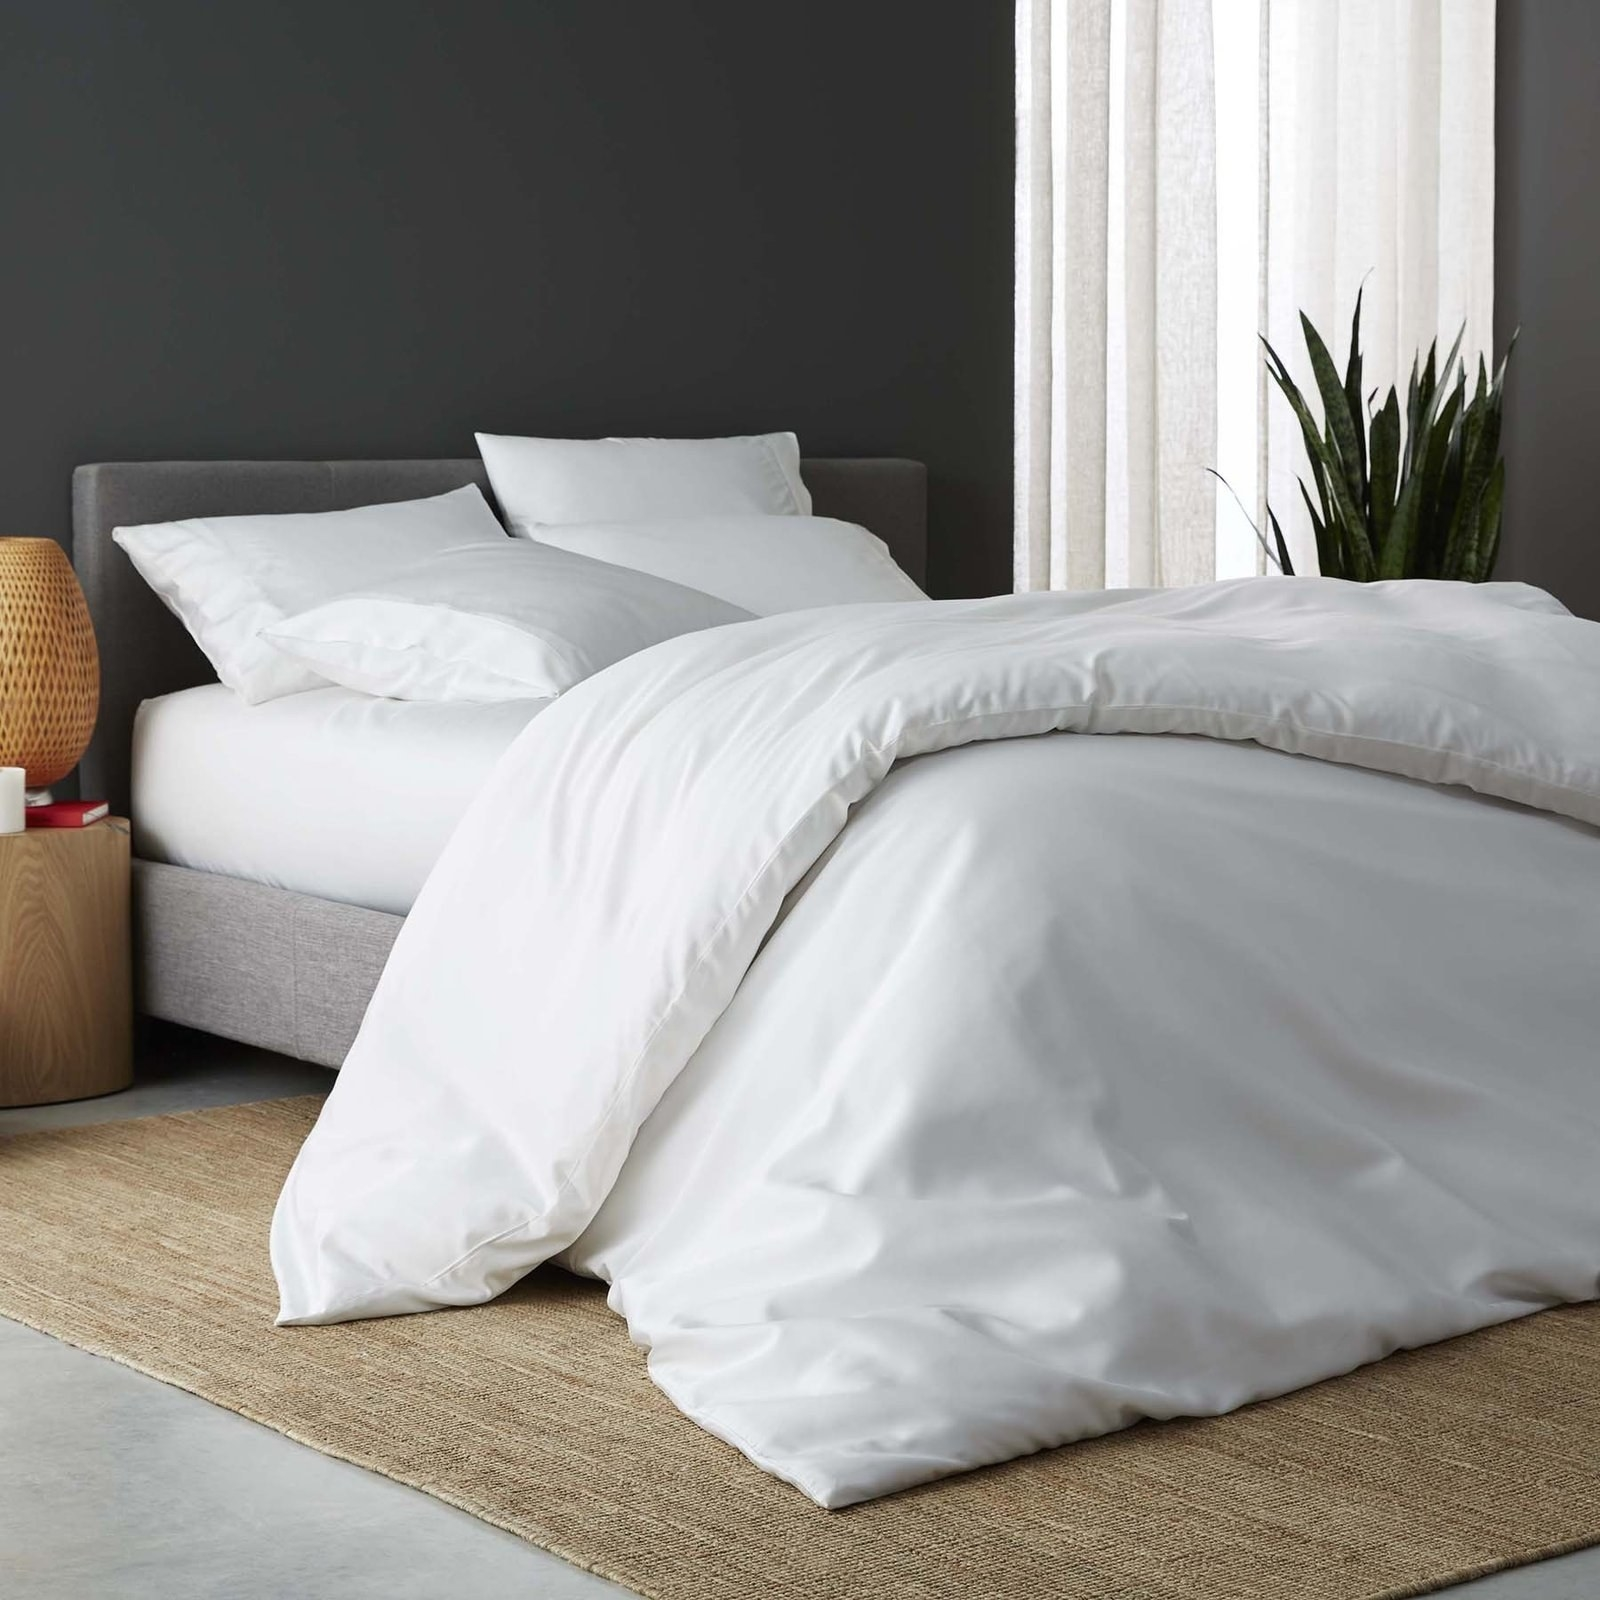 a set of white eucalyptus sheets on a bed